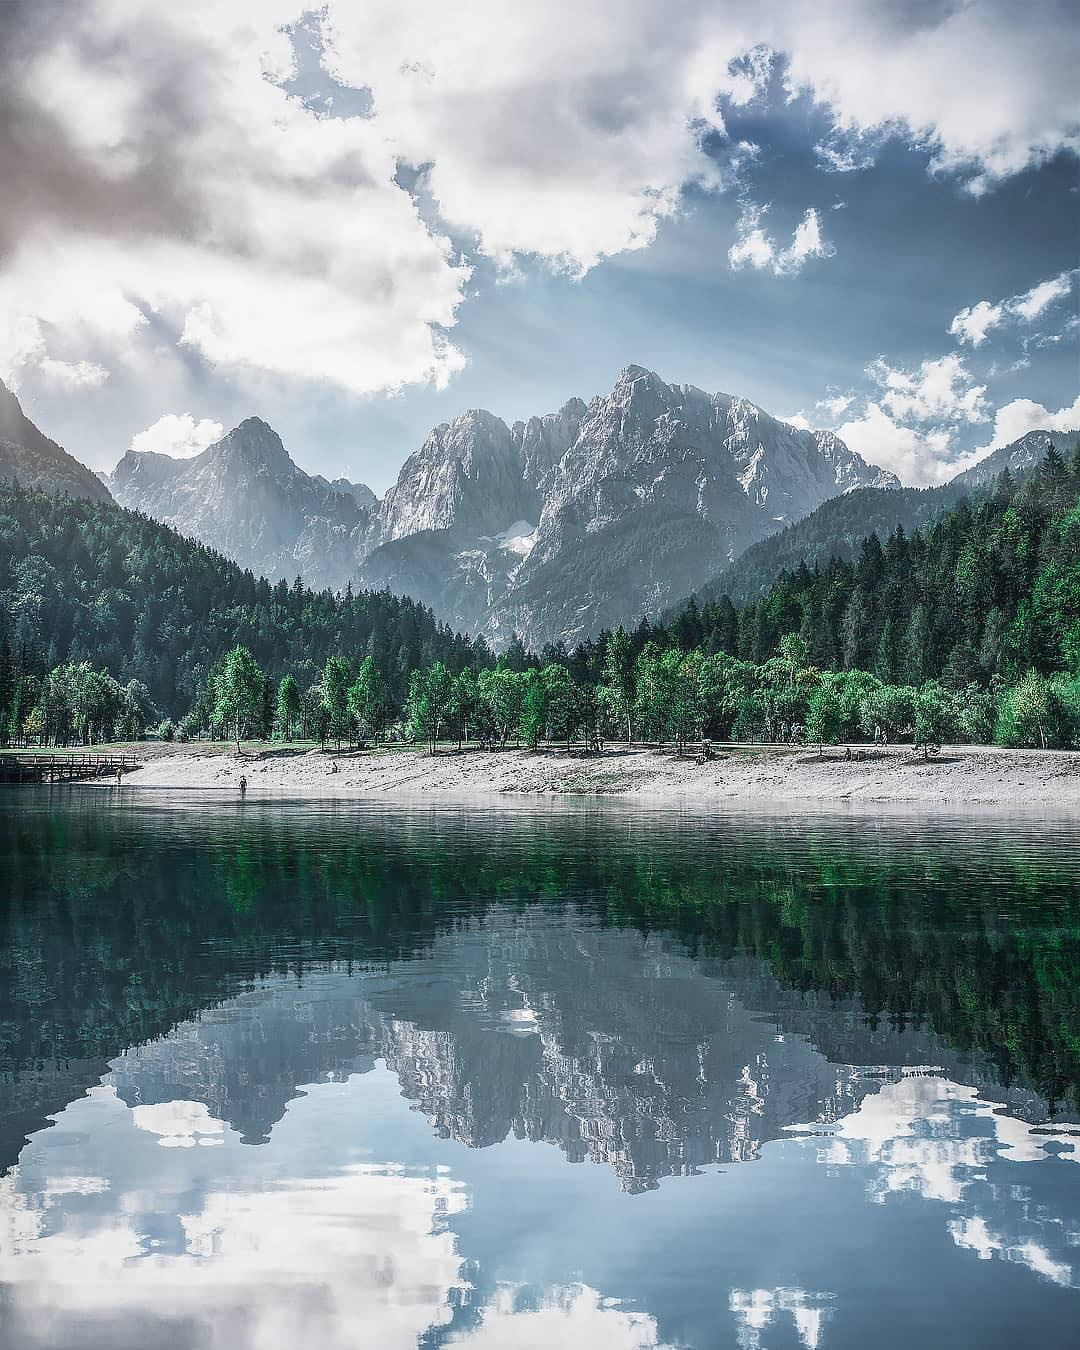 LAKE JASNA   What a reflection of these majestic mountains!  Anyone up for a short break at the Jasna Lake?  It consists of two interconnected artificial lakes at the confluence of the Velika Pišnica a and Mala Pišnica streams. Thanks @mandrake80 for sharing your photo with #ifeelsLOVEnia.